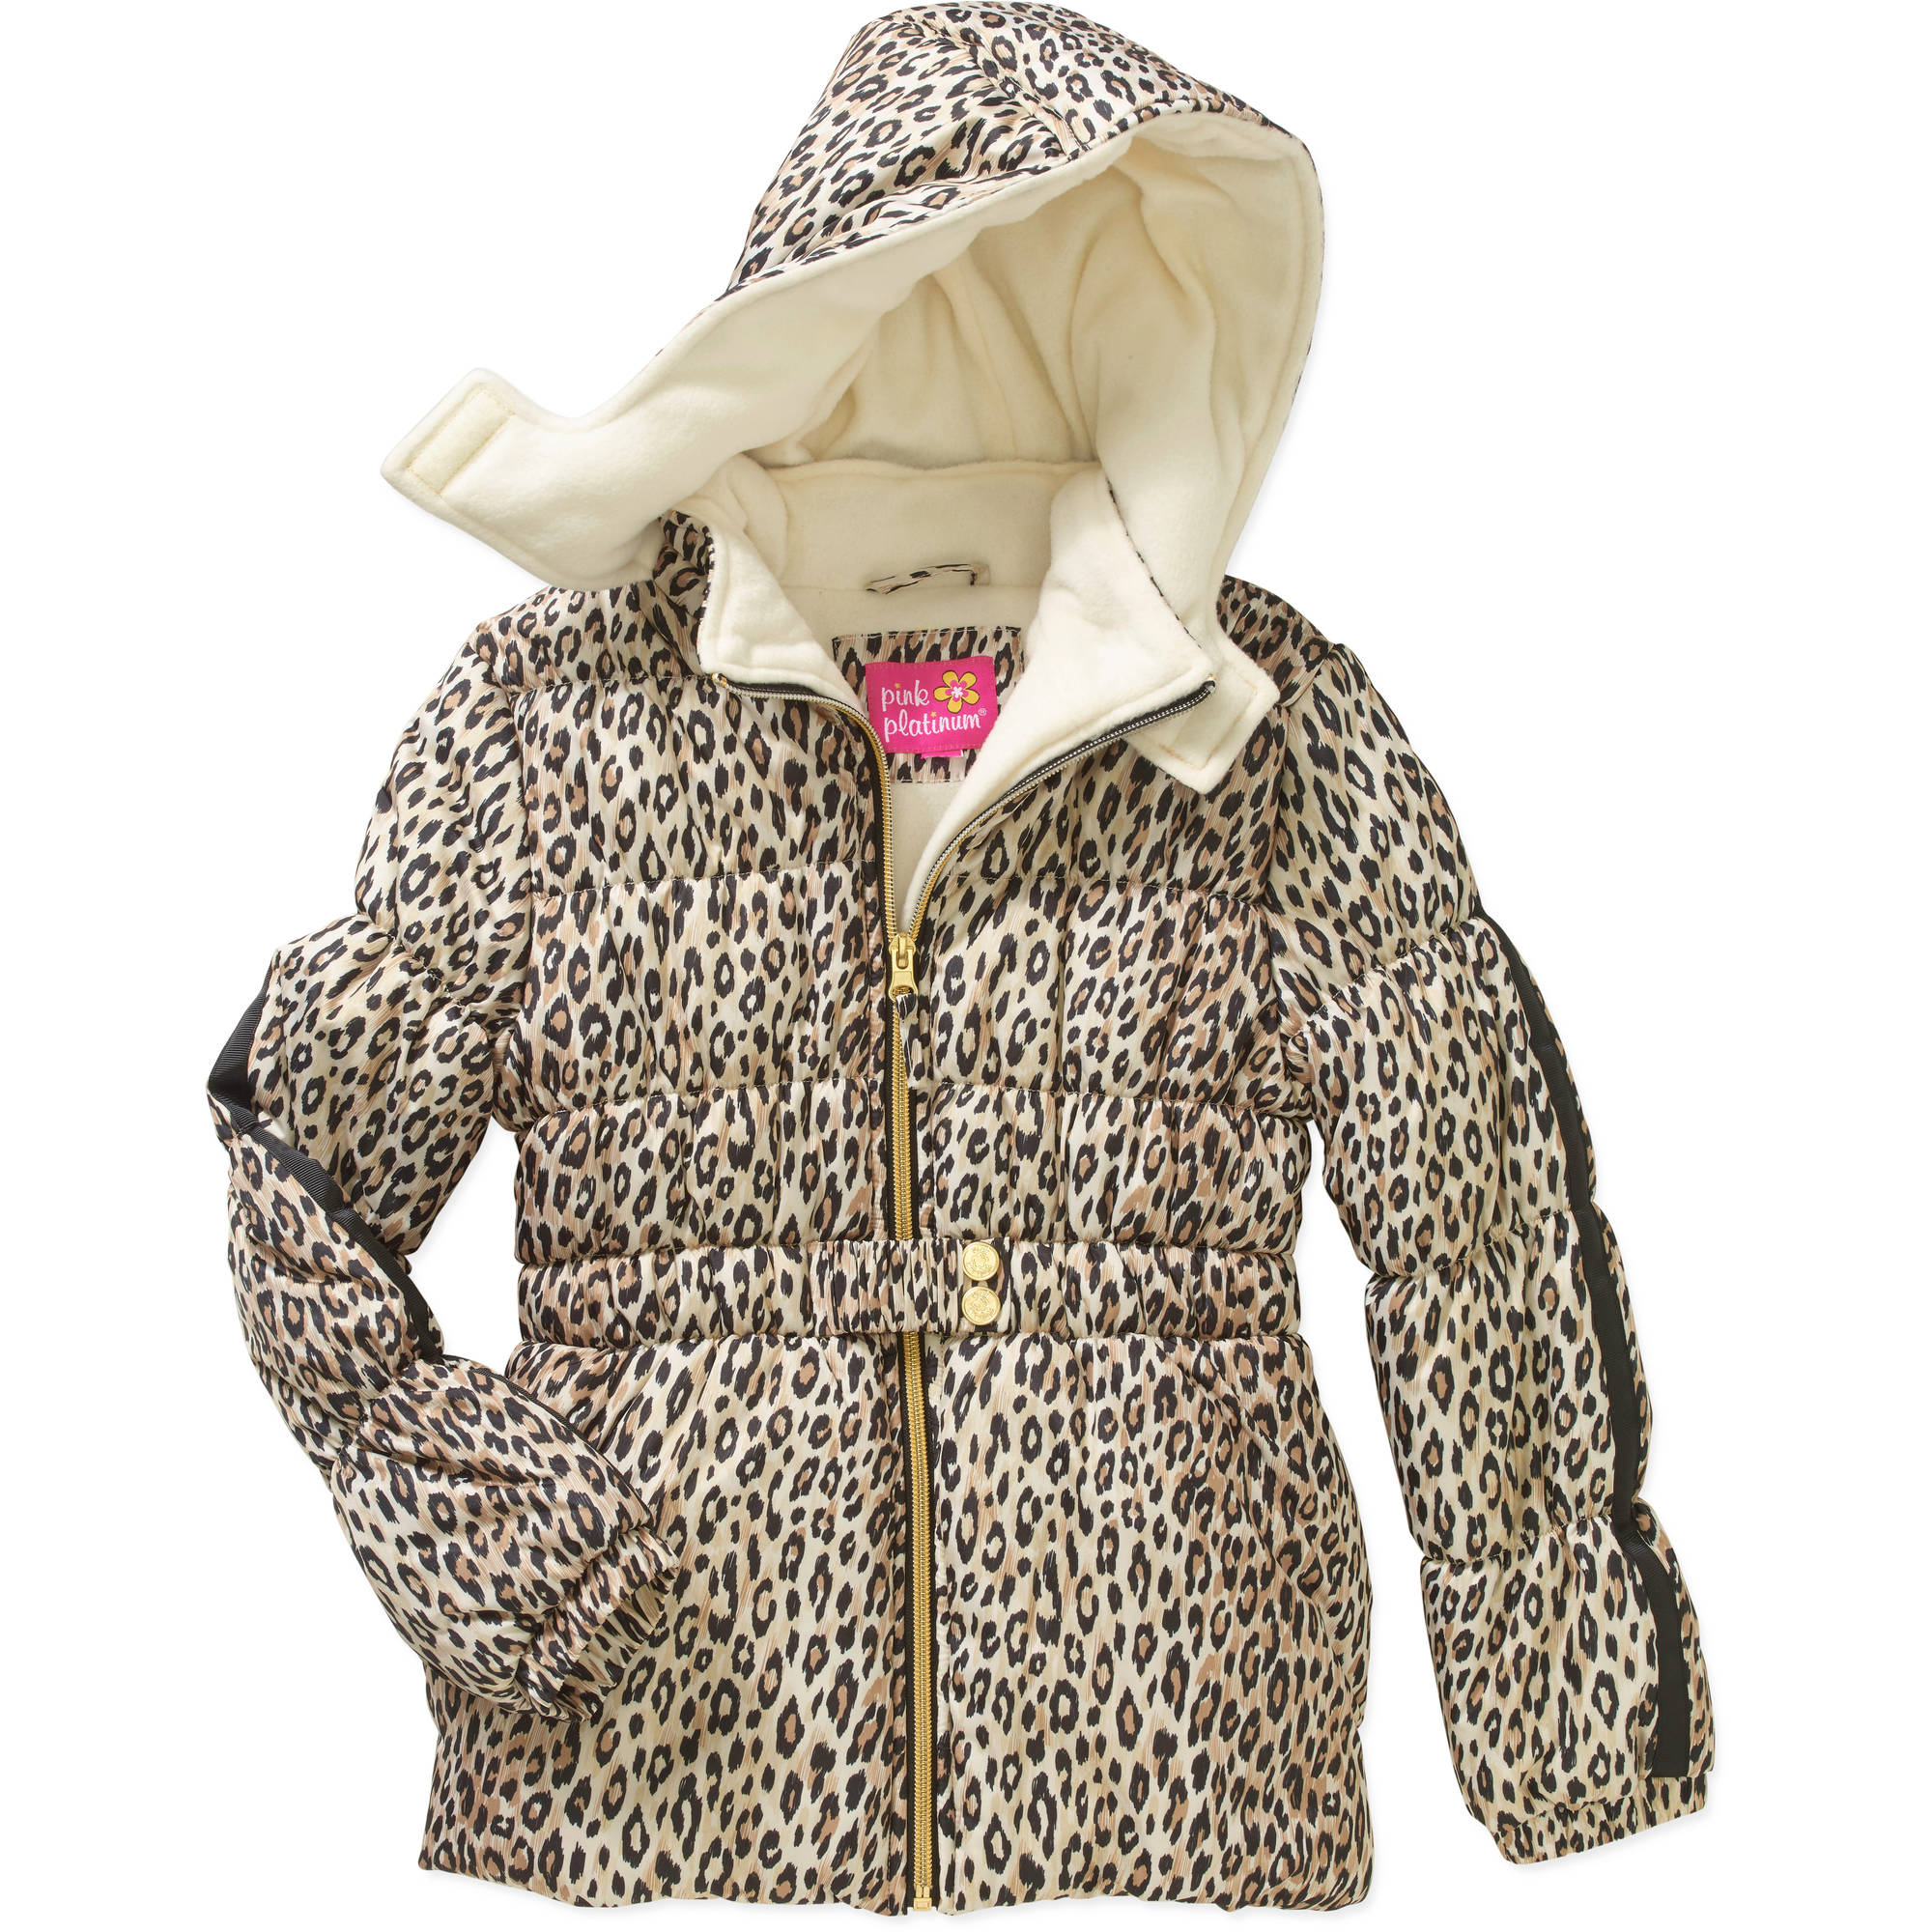 Girls' Belted All Over Cheetah Print Puffer Jacket with Hood